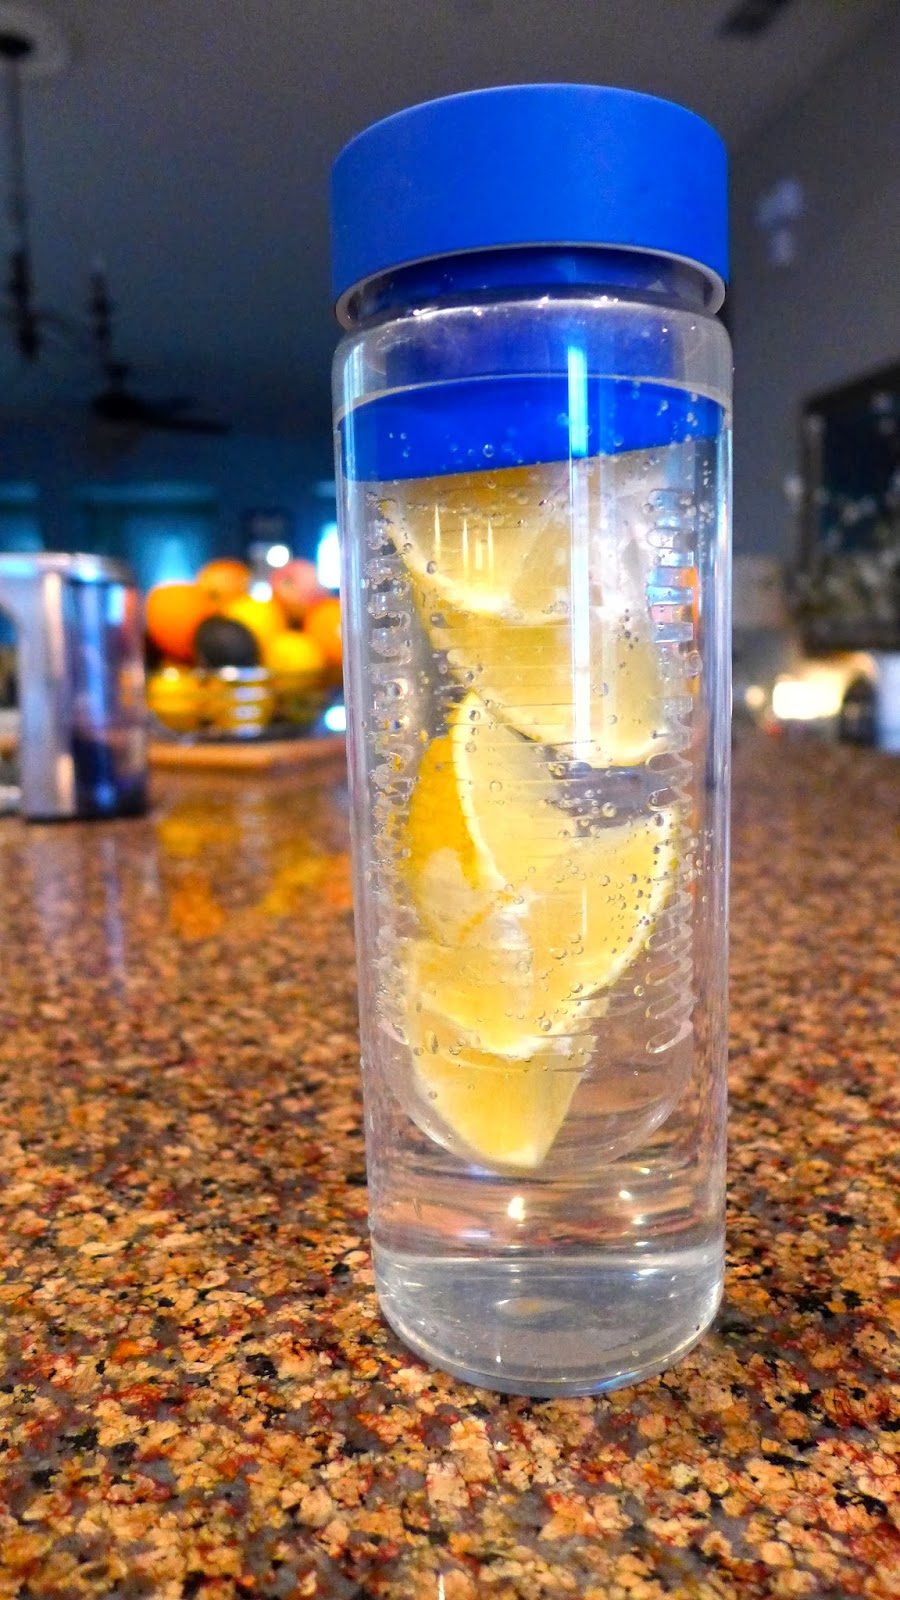 #Water bottle with fruit infuser #drink